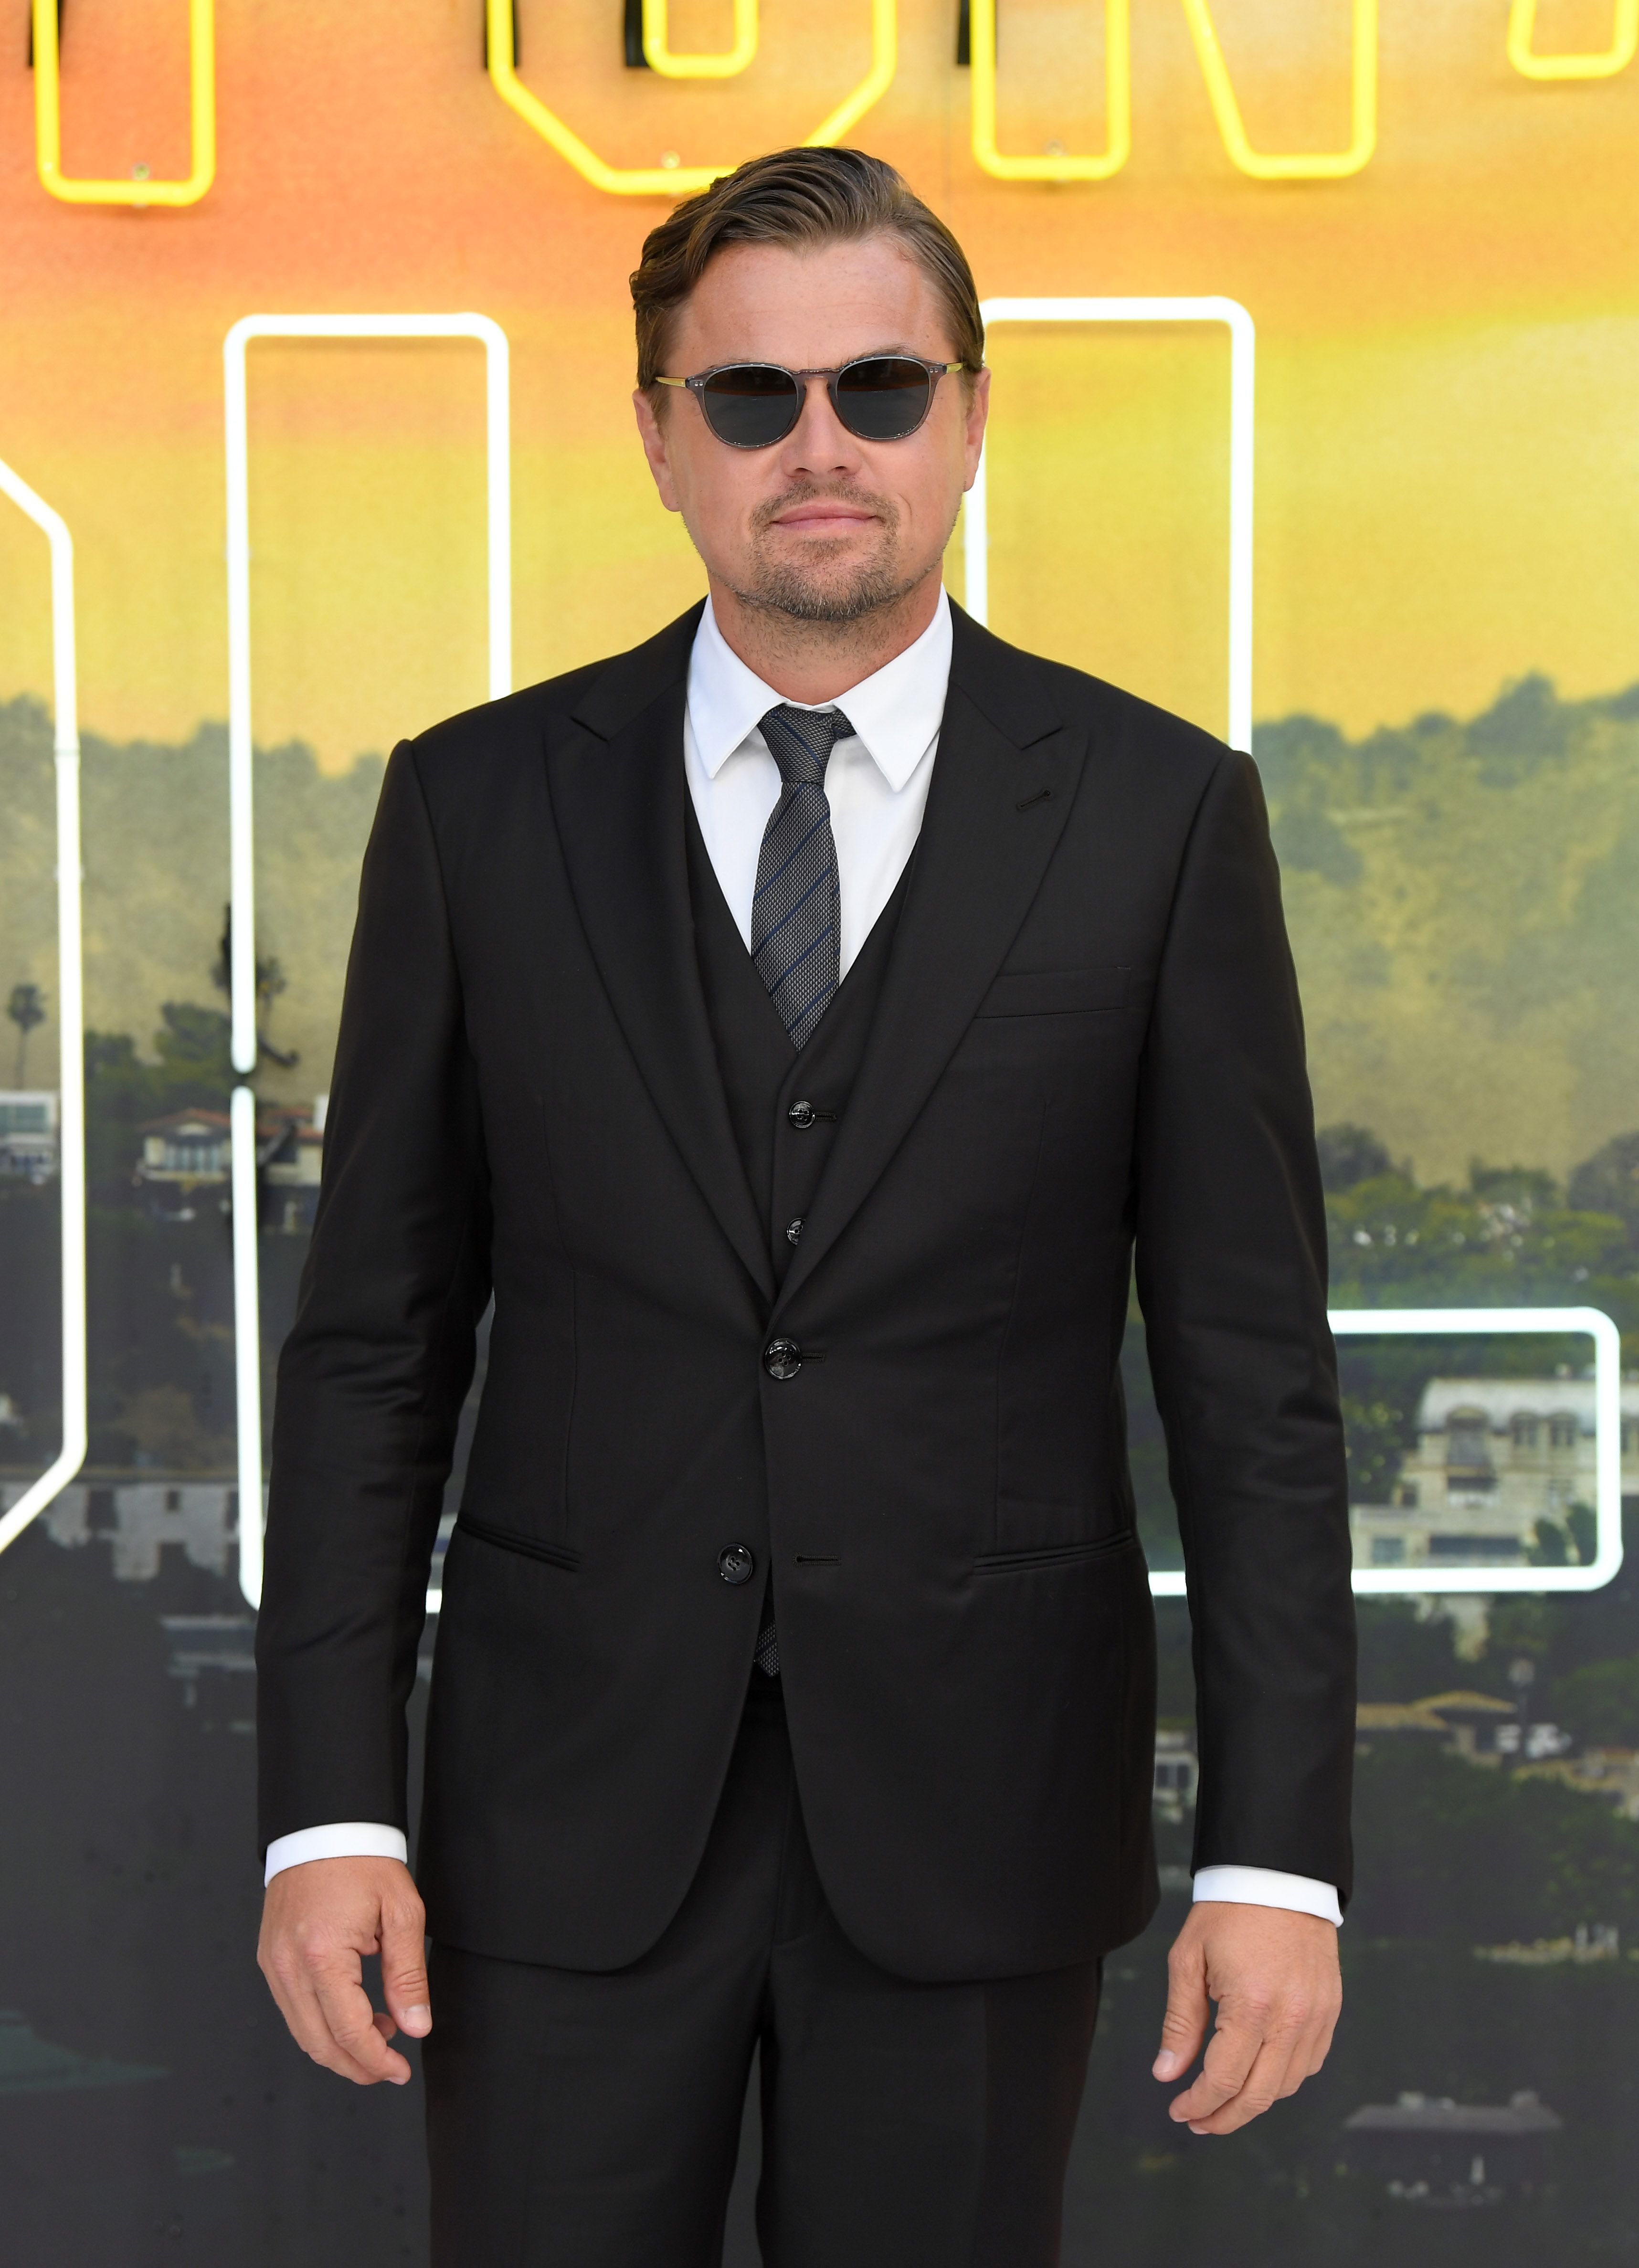 Leonardo DiCaprio Heads Back To Wall Street For The 'Once Upon A Time In Hollywood' Premiere